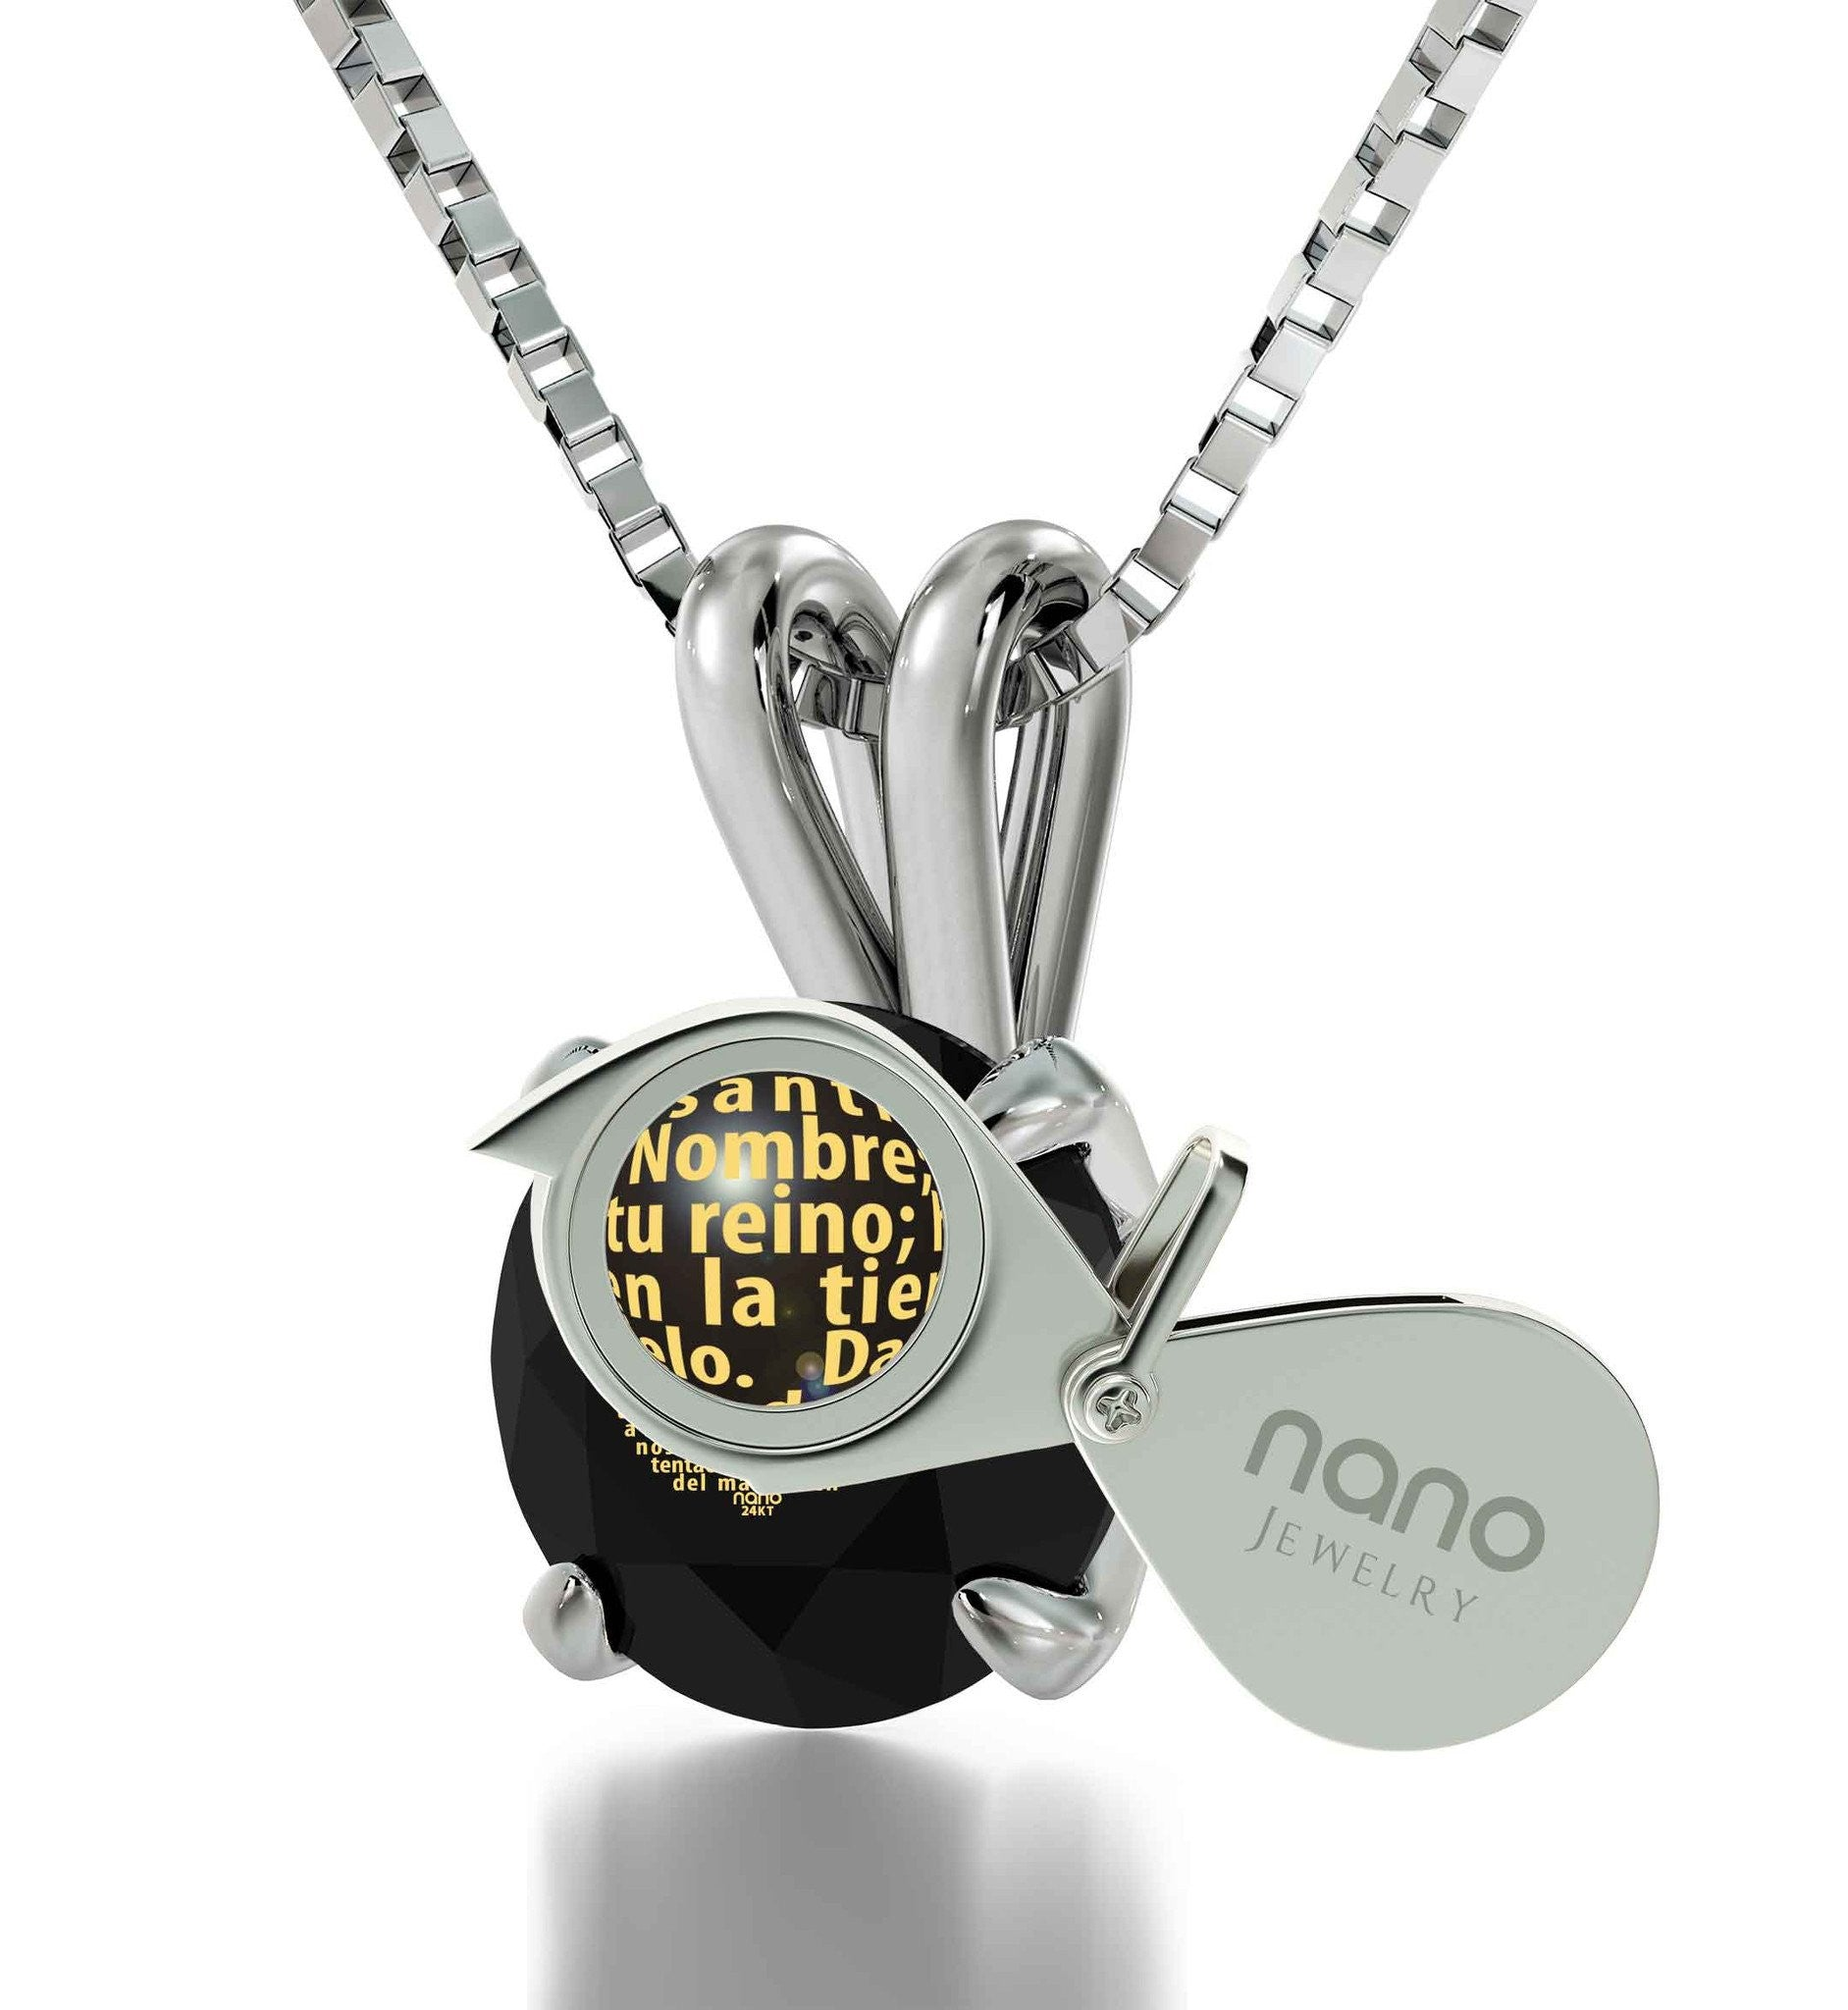 Spanish Bible Verse Necklace, Unique Imprint. Buy Now! Nano Jewelry!